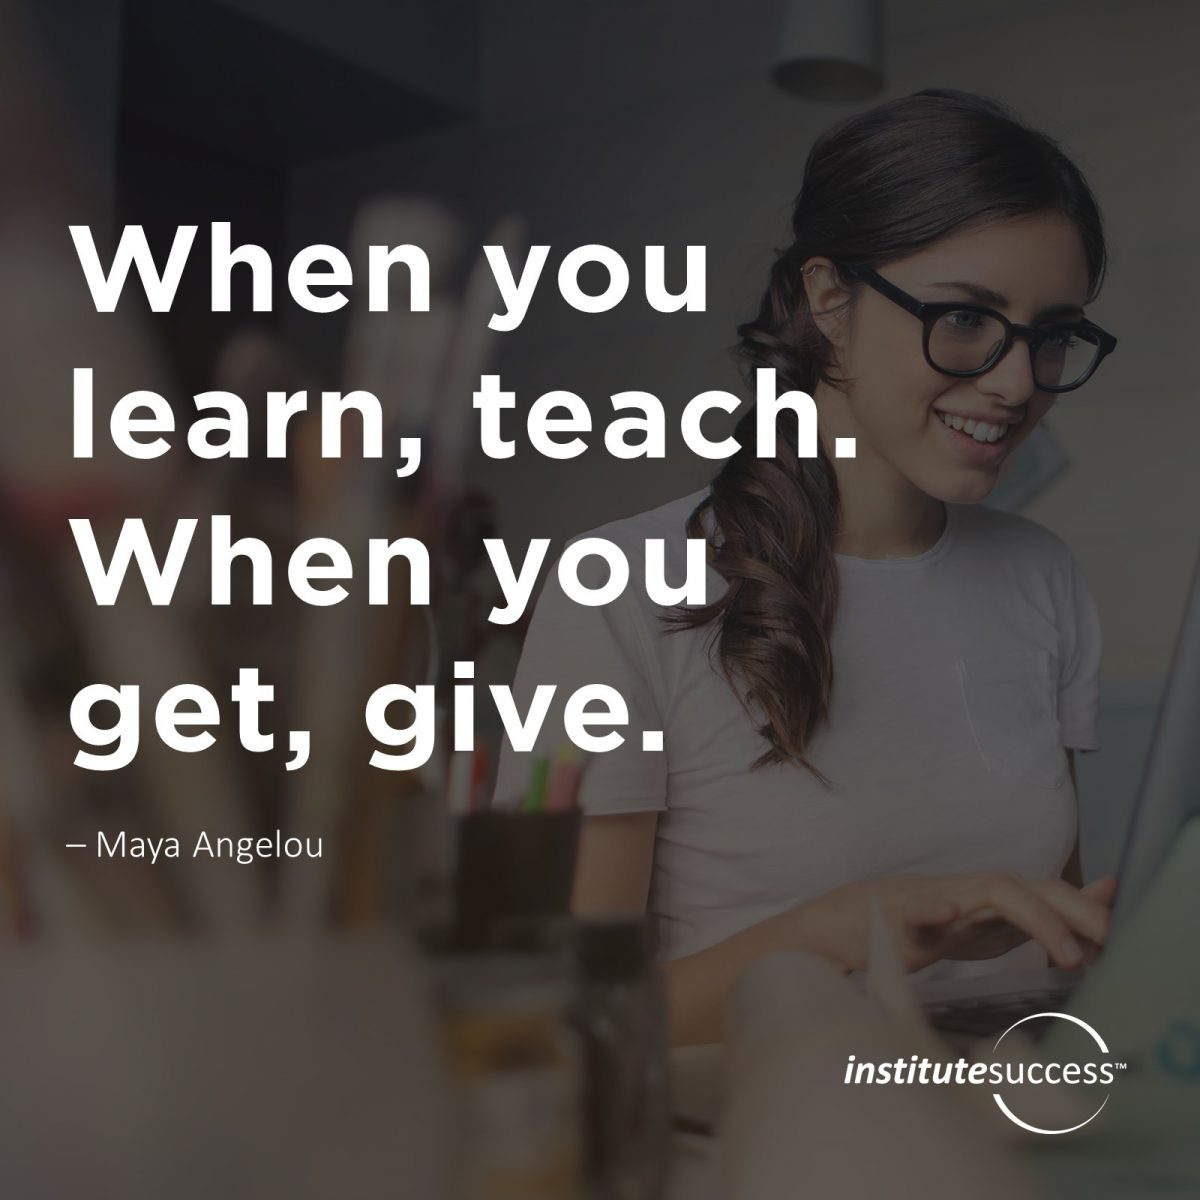 When you learn, teach. When you get, give. – Maya Angelou